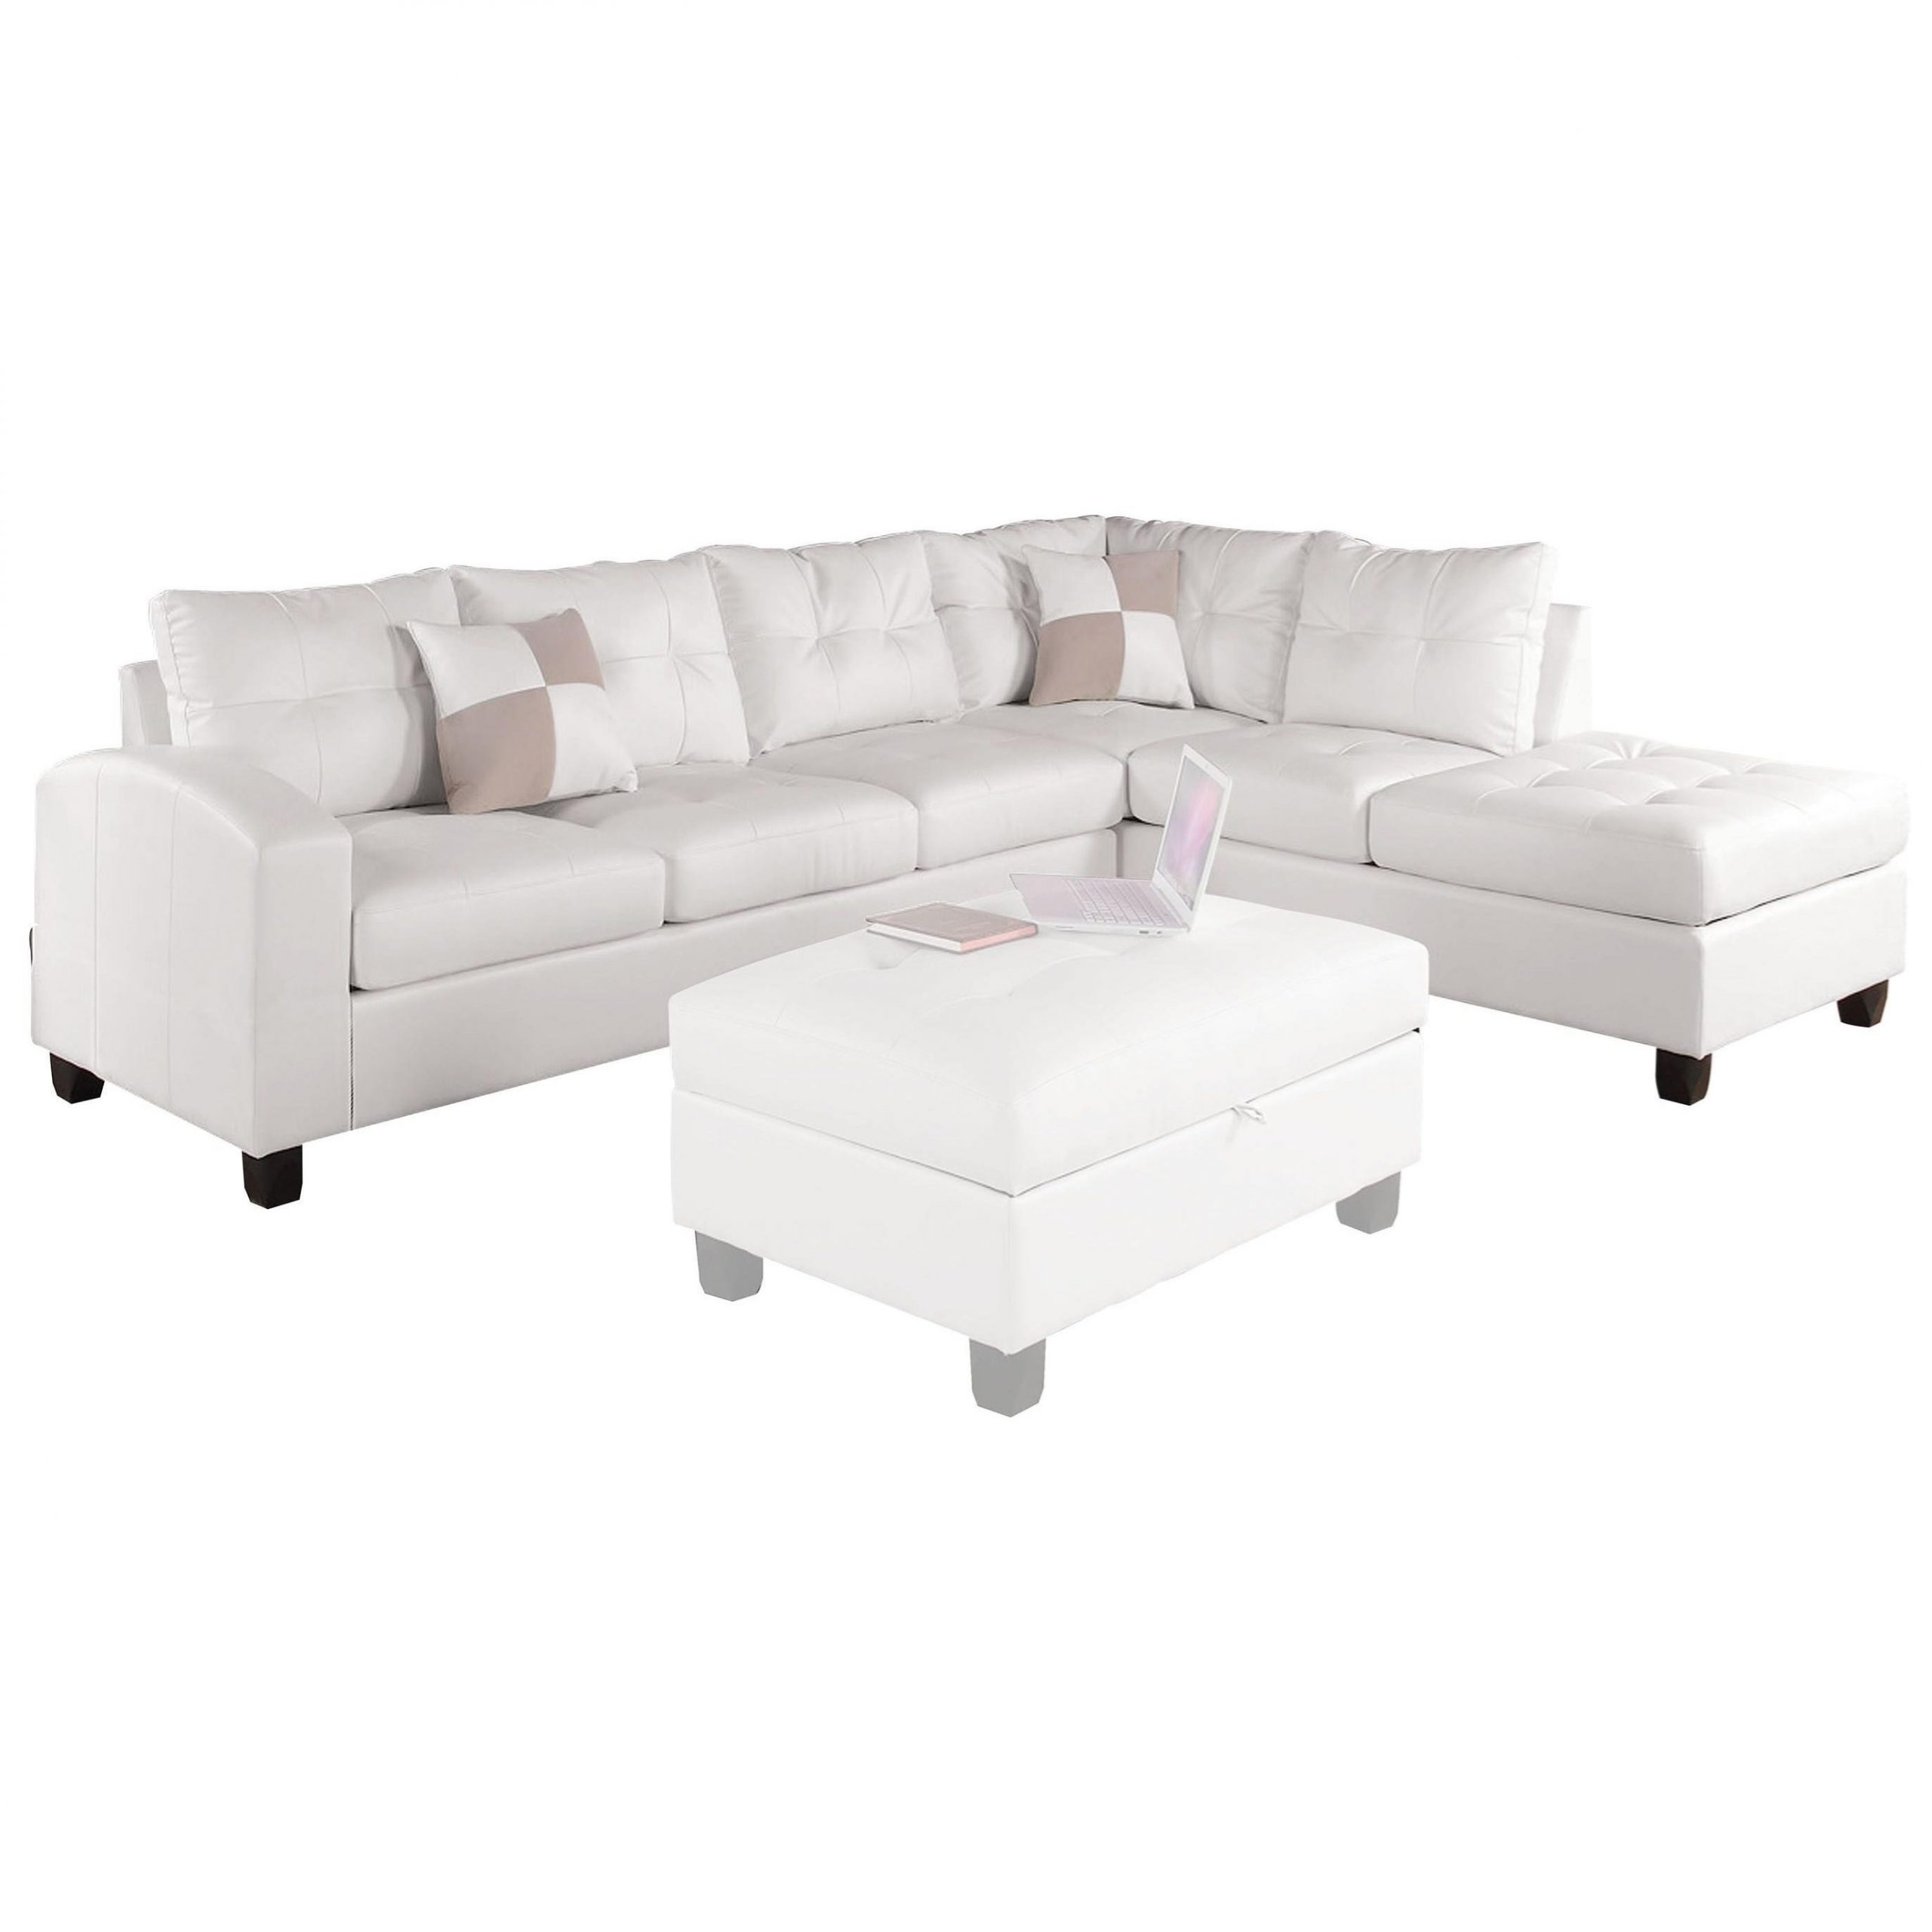 Acme Furniture Kiva Sectional Sofa W/2 Pillows (Reversible Throughout Clifton Reversible Sectional Sofas With Pillows (View 15 of 15)